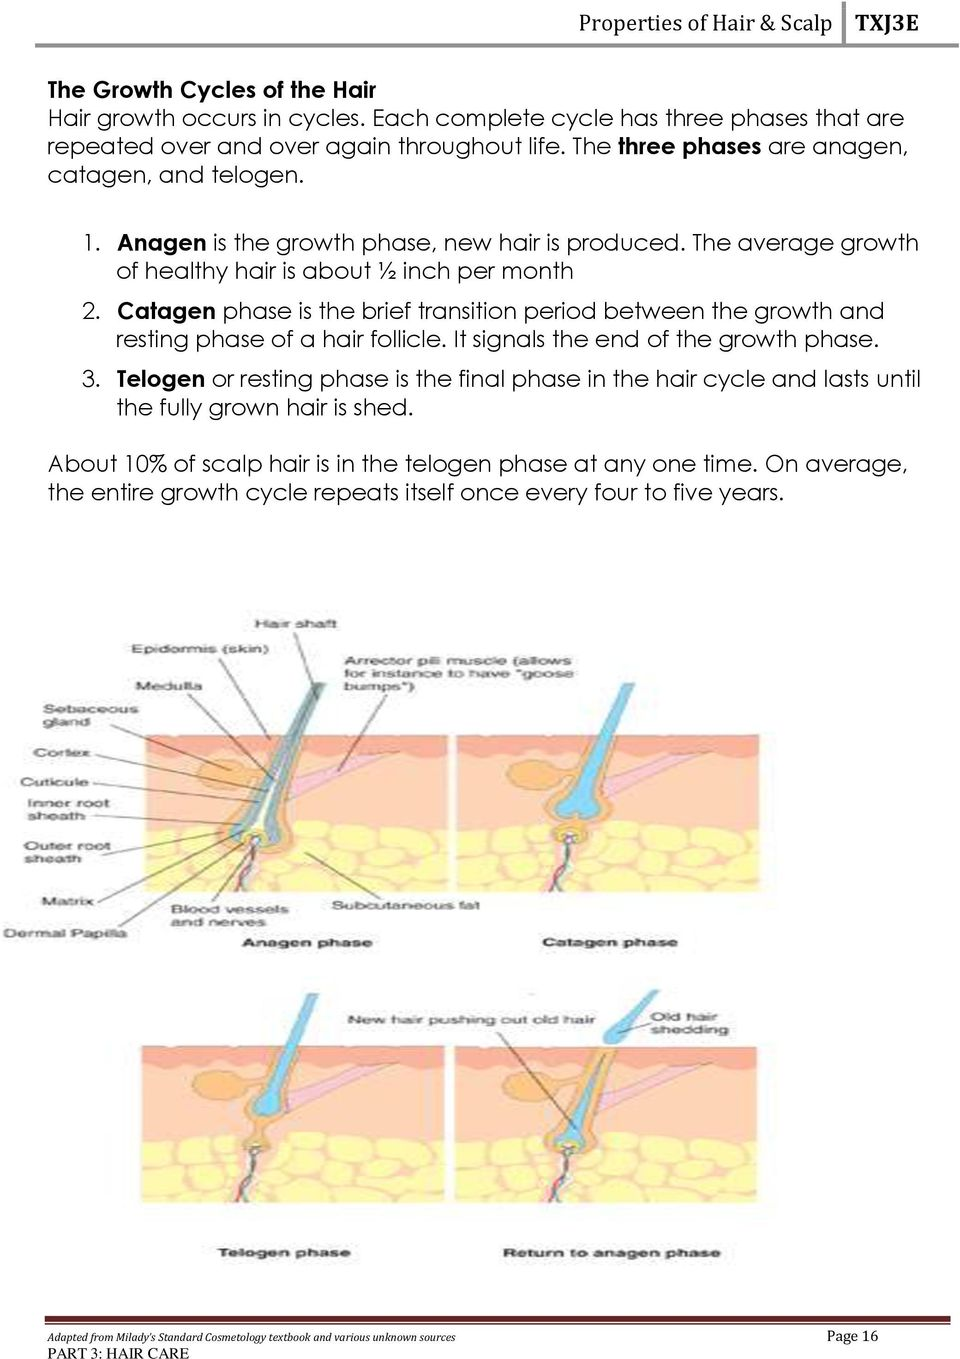 Catagen phase is the brief transition period between the growth and resting phase of a hair follicle. It signals the end of the growth phase. 3.